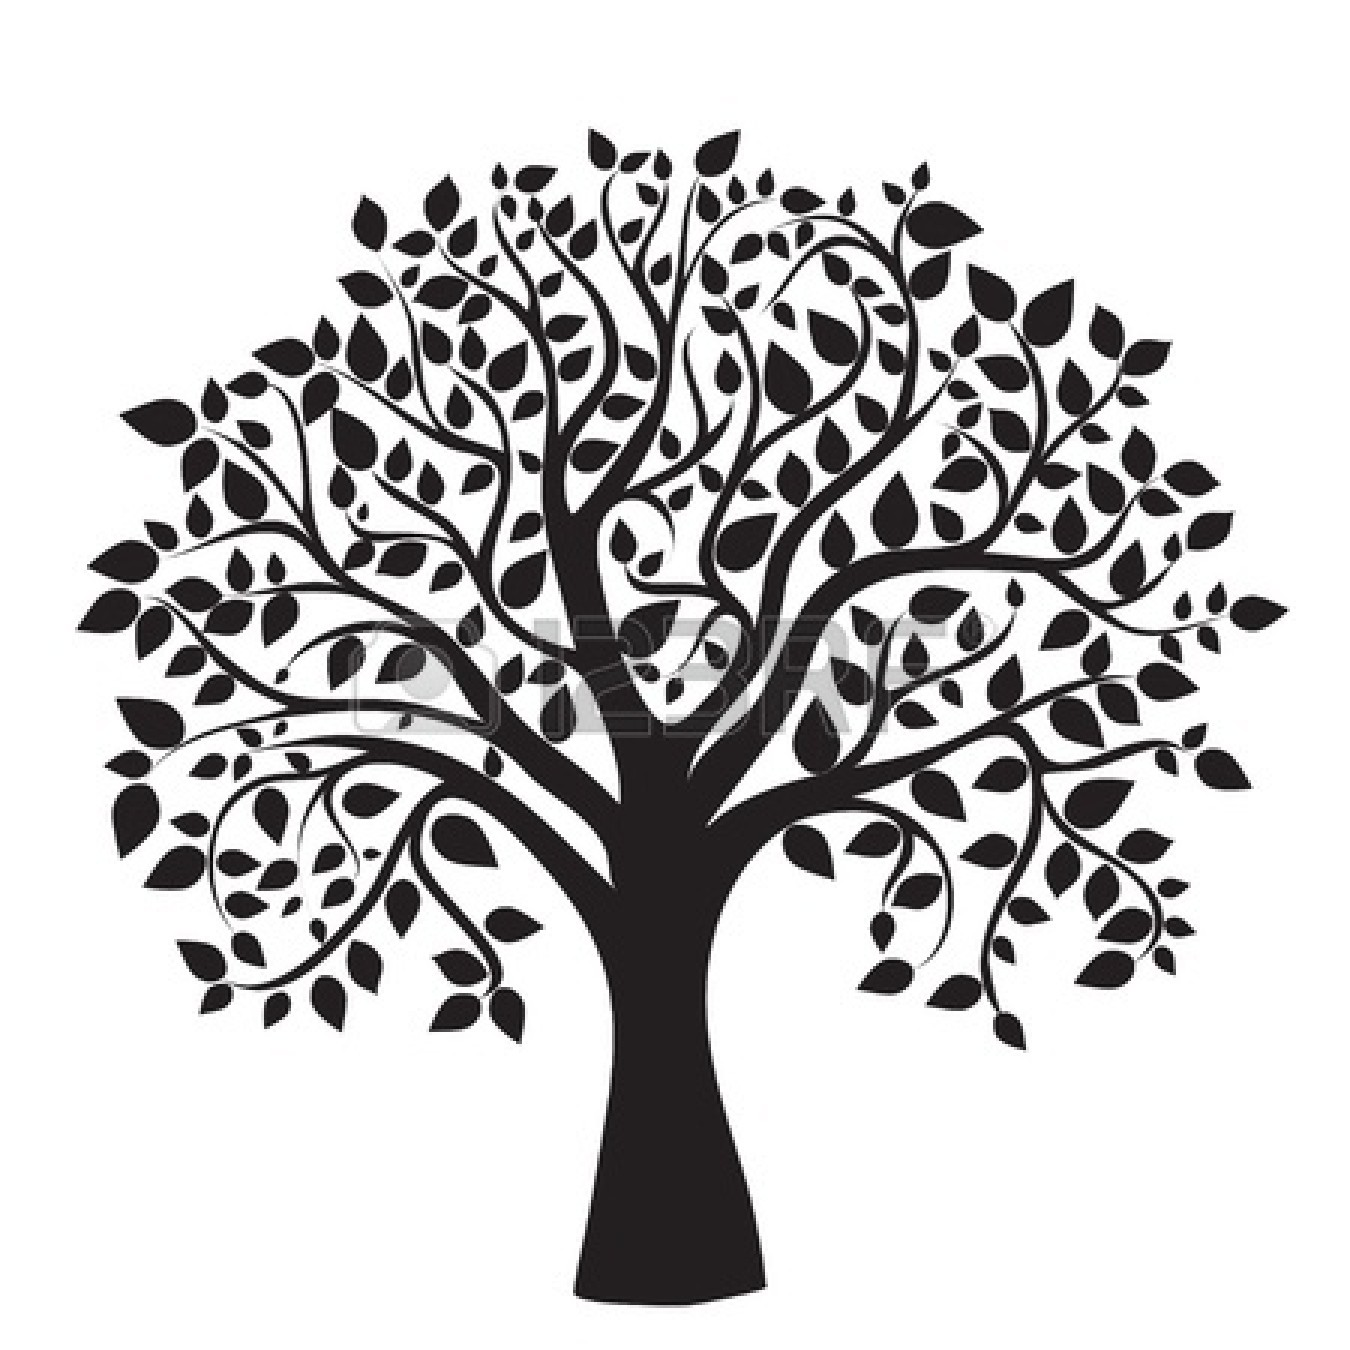 Free Family Tree Clipart, Download Free Clip Art, Free Clip